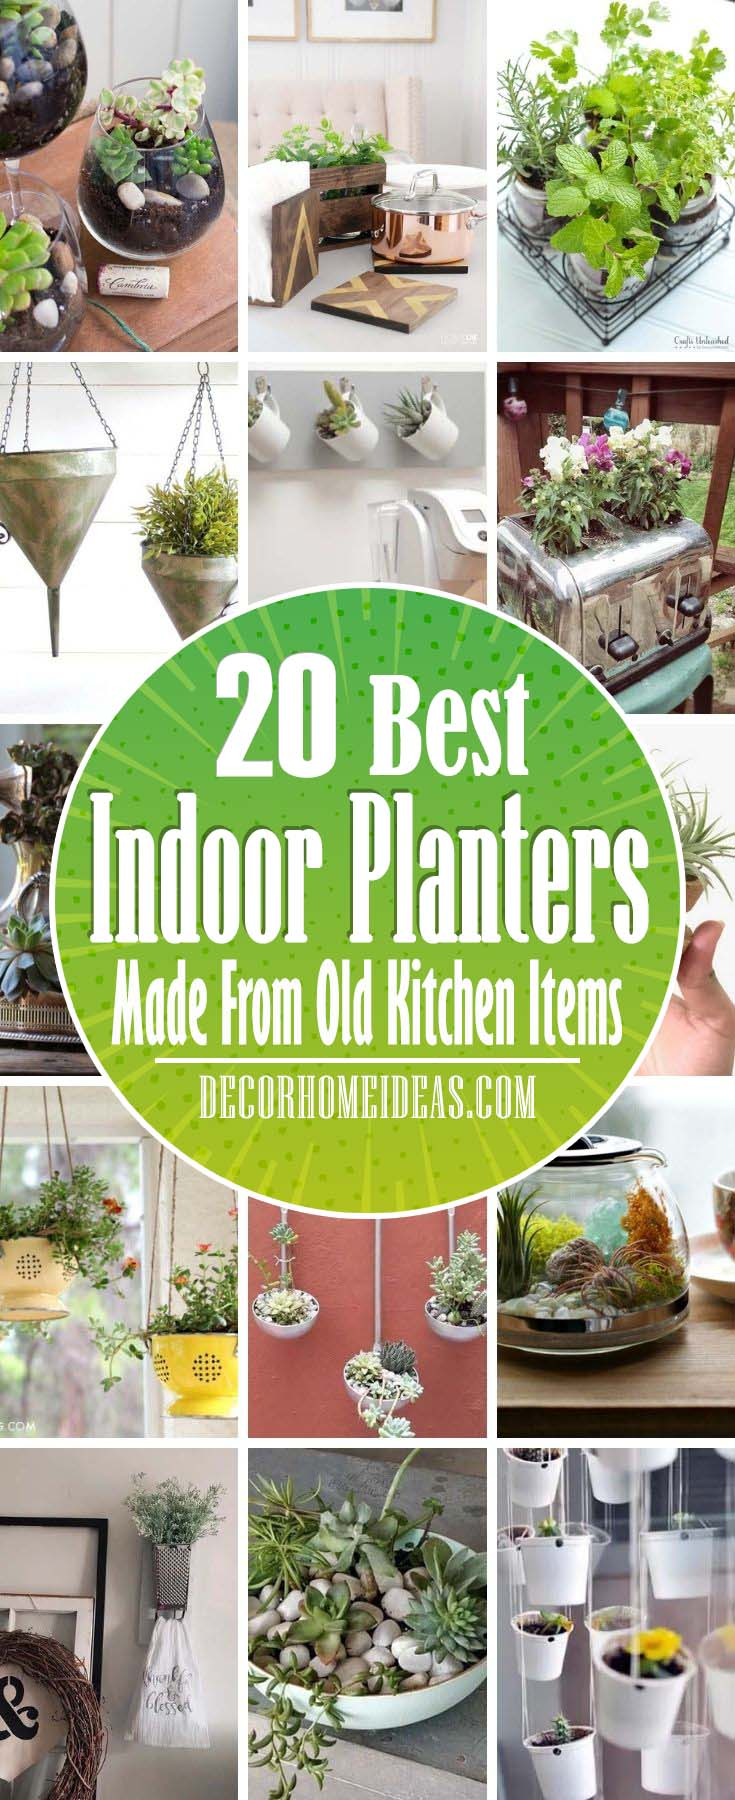 Best Indoor Planters From Old Kitchen Items. Before you toss that old pie plate or utensil in the trash consider giving it a second life. Here are more than 20 DIY indoor planters made from old kitchen stuff. #decorhomeideas